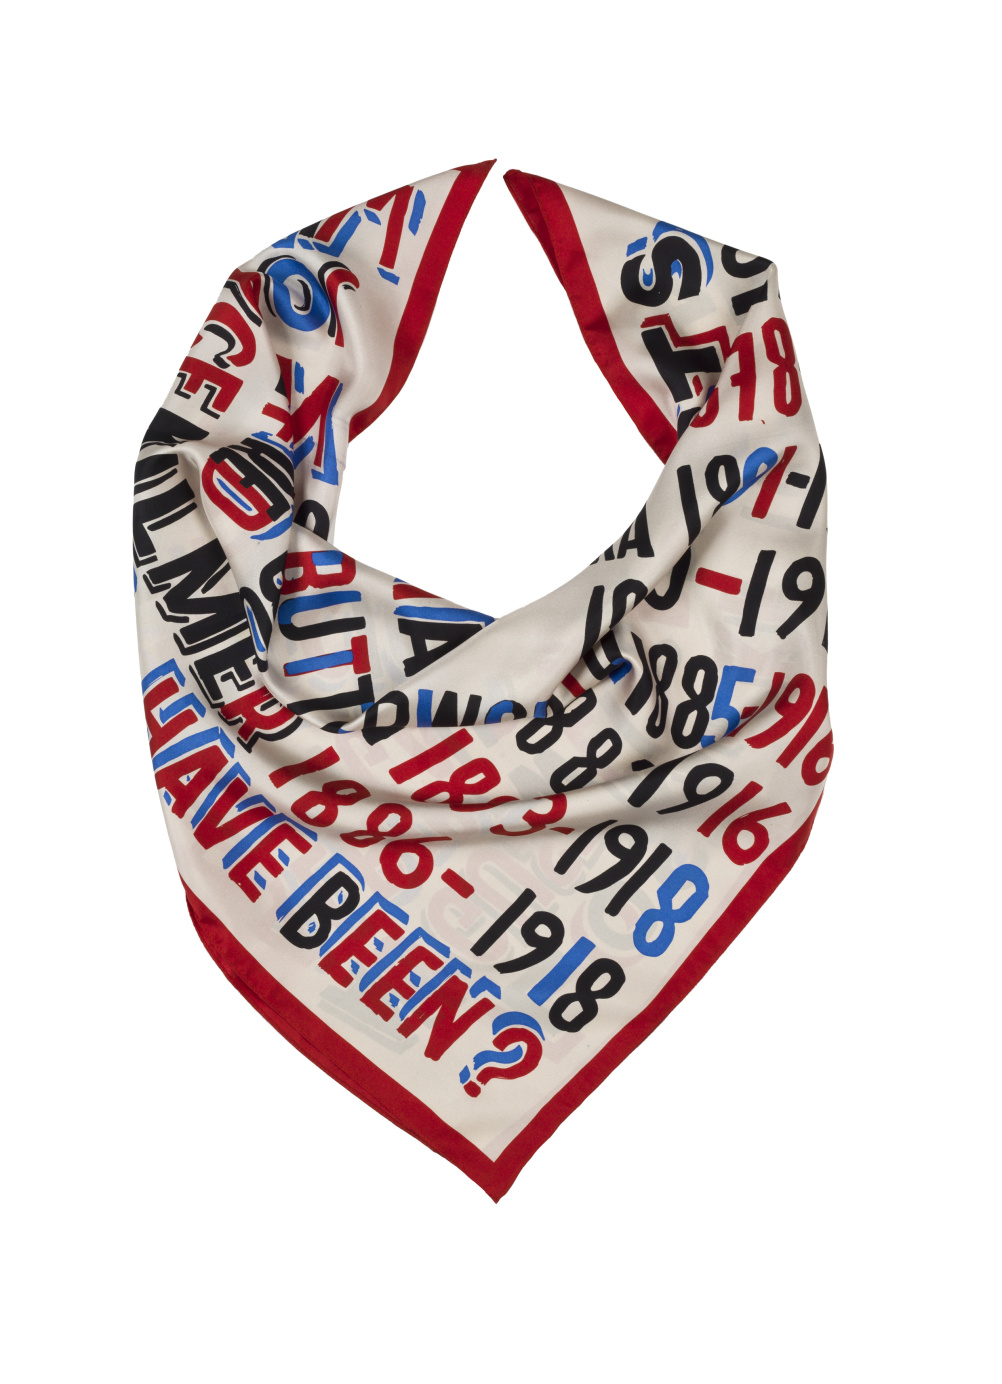 Lost Artist Scarf wrap by Bob and Roberta Smith